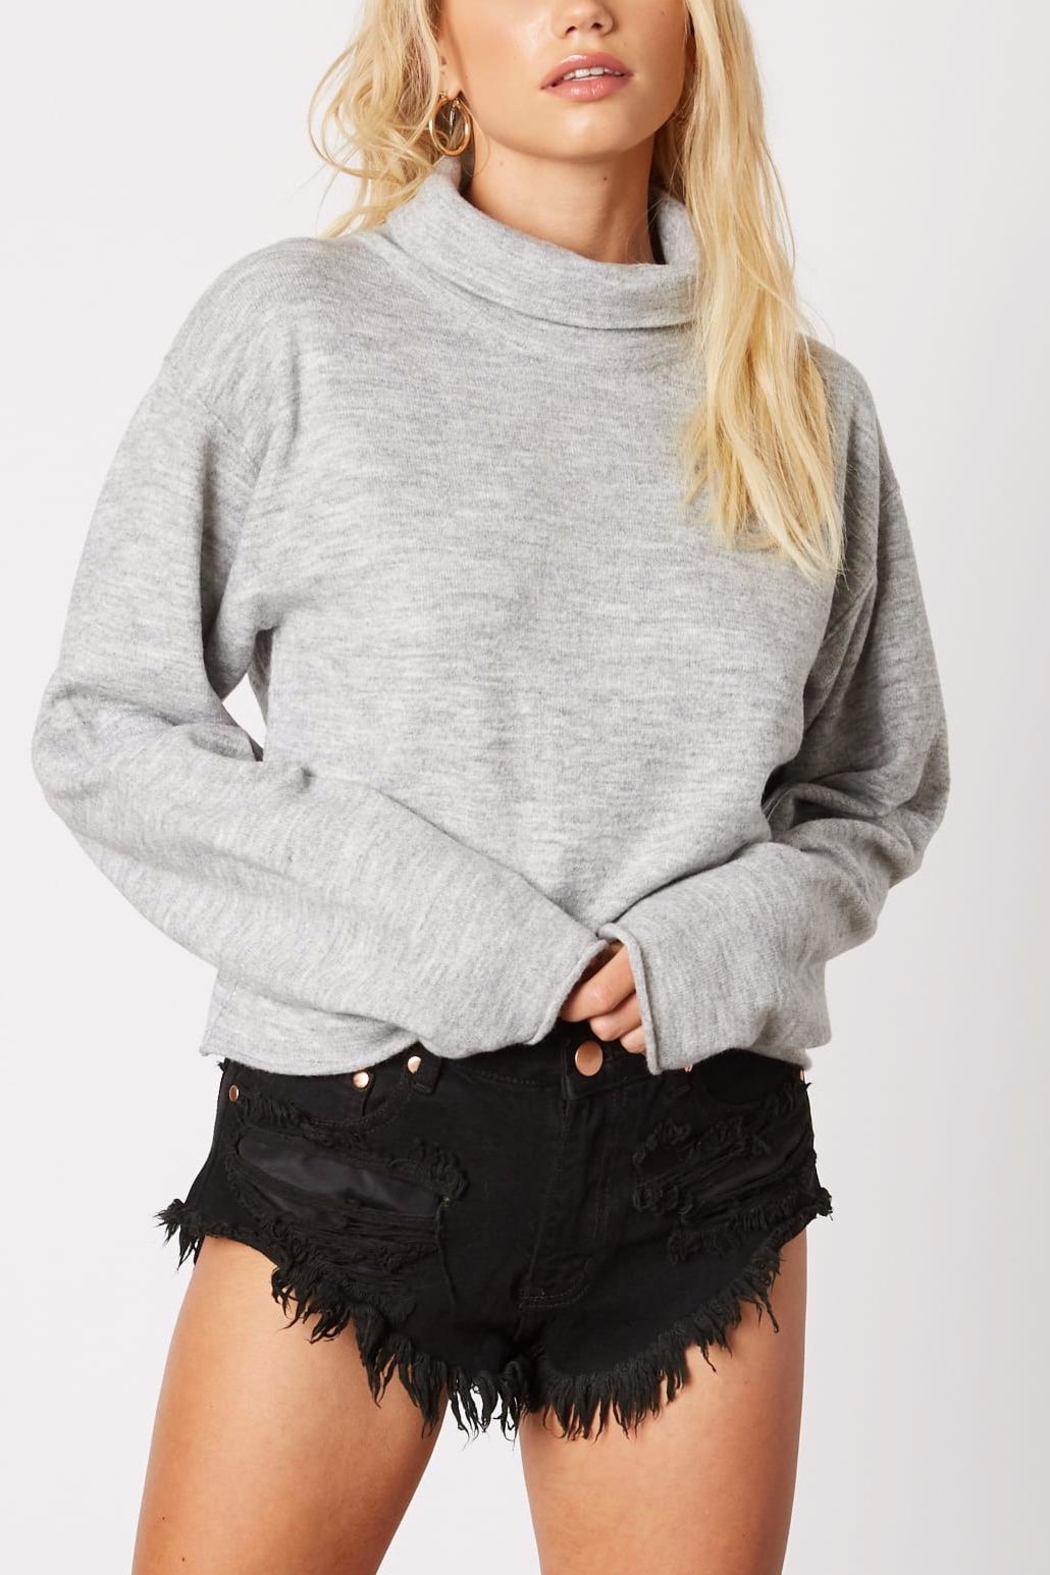 Cotton Candy Cropped Turtleneck Sweater - Main Image